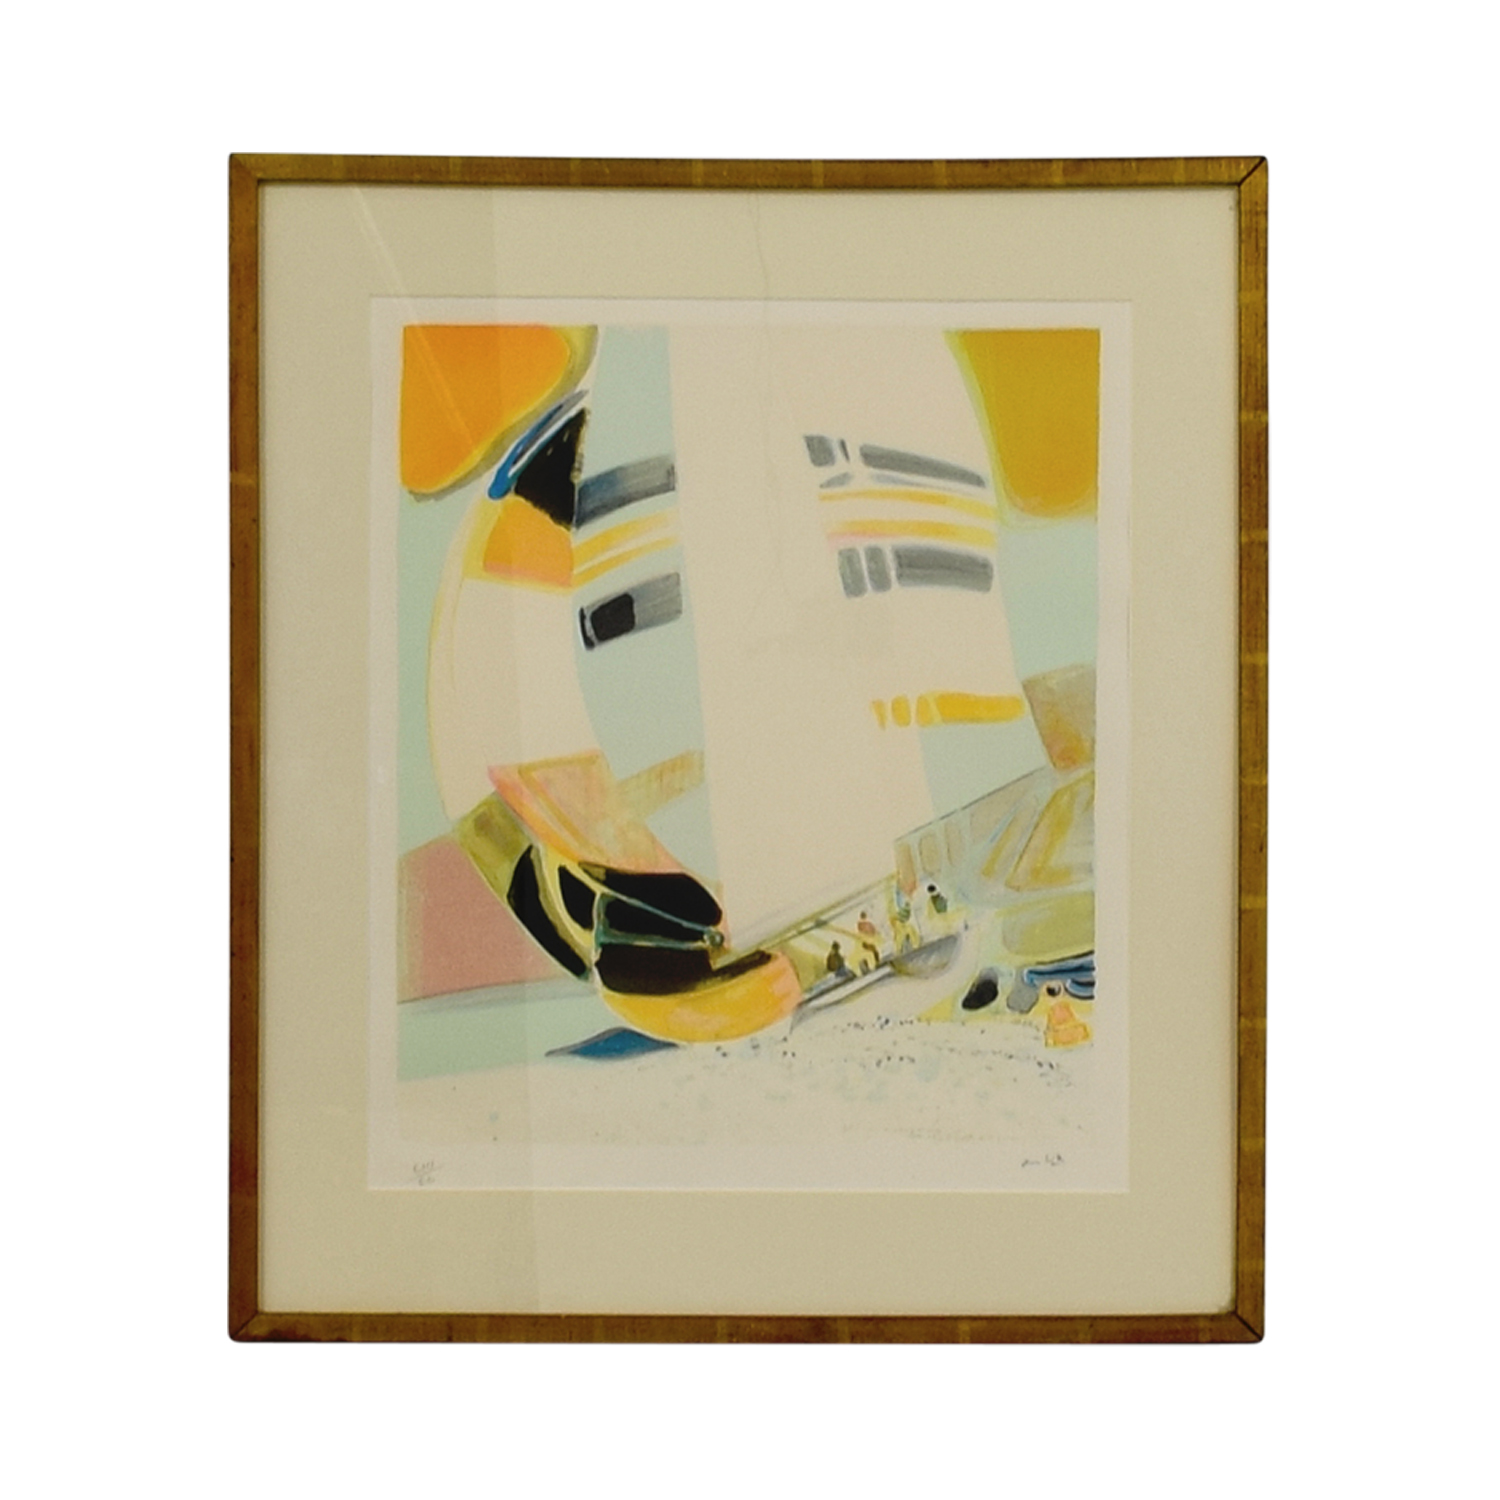 Framed Amhil Sailboat Lithograph / Wall Art